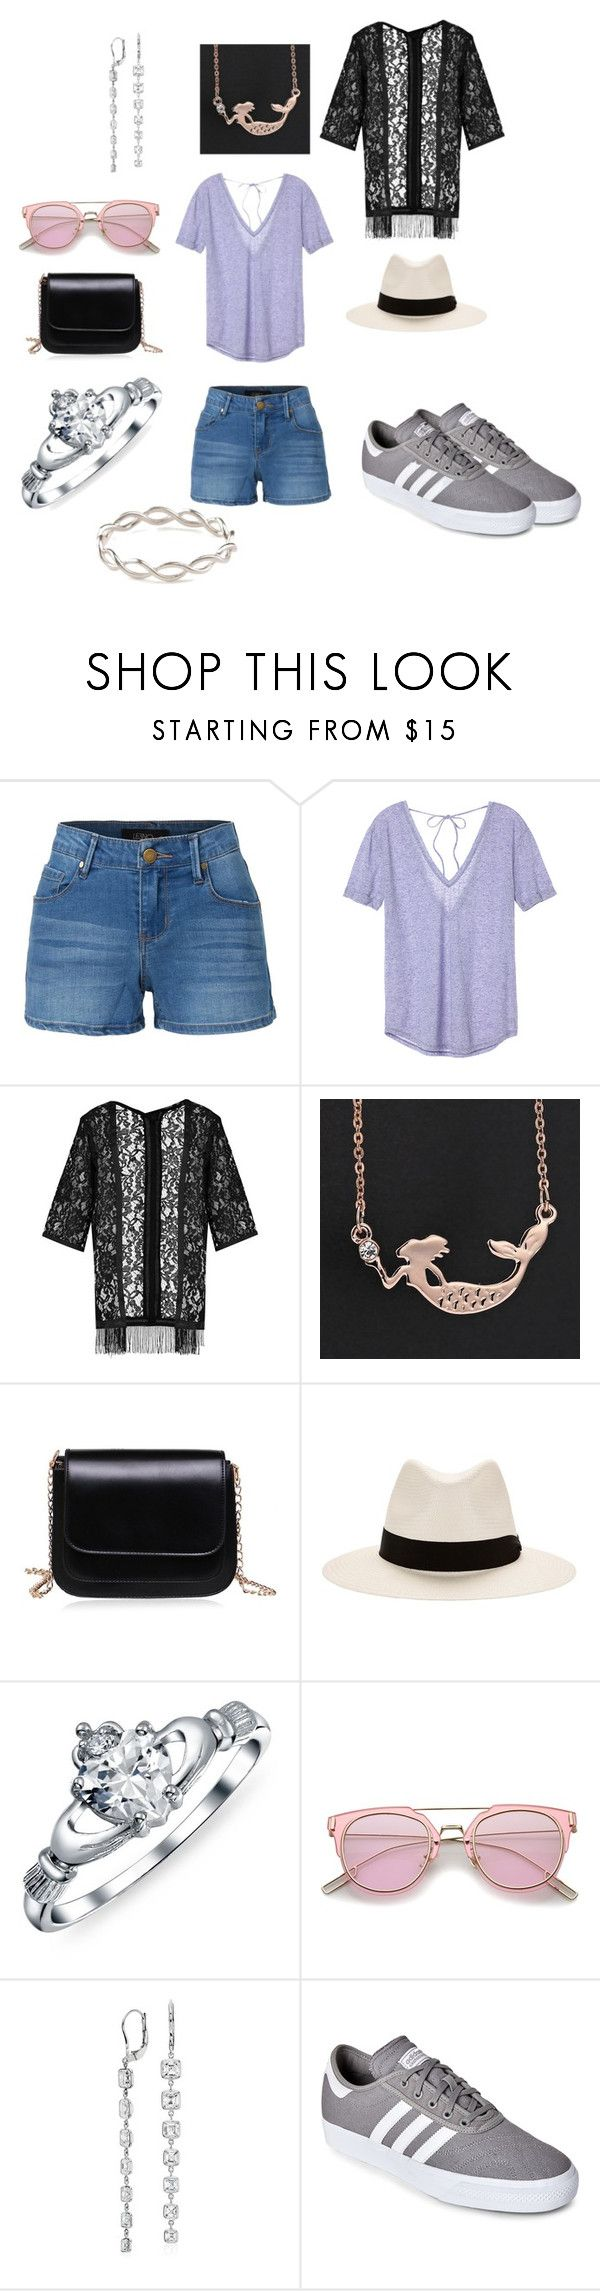 """""""San Diego County Fair"""" by kahley-stewart on Polyvore featuring LE3NO, Victoria's Secret, Boohoo, rag & bone, Bling Jewelry, Blue Nile, adidas and Pernille Corydon"""